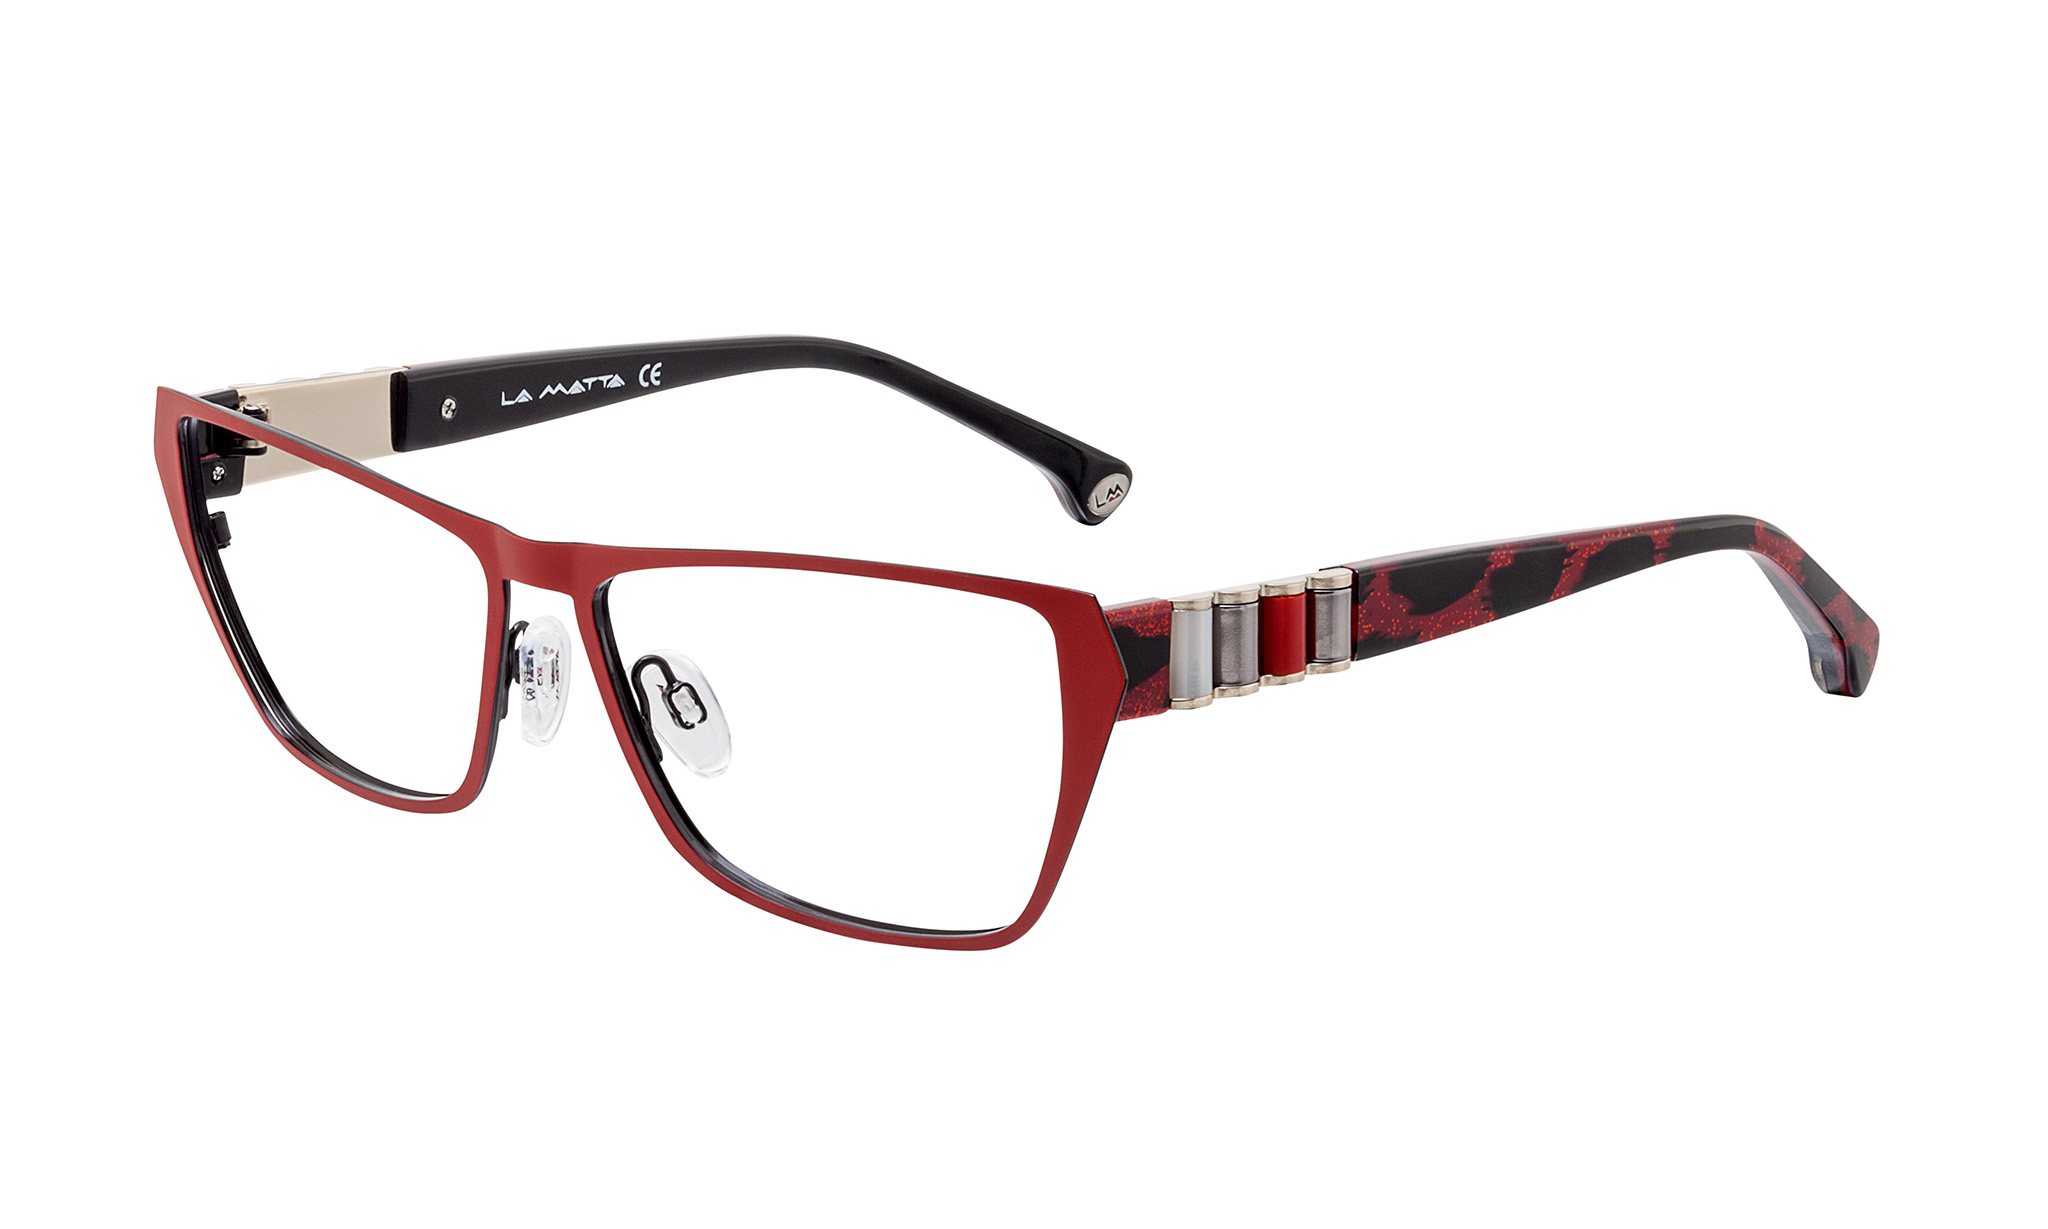 Patriotic Eyewear – Celebrate Canada's 150th with the right frame